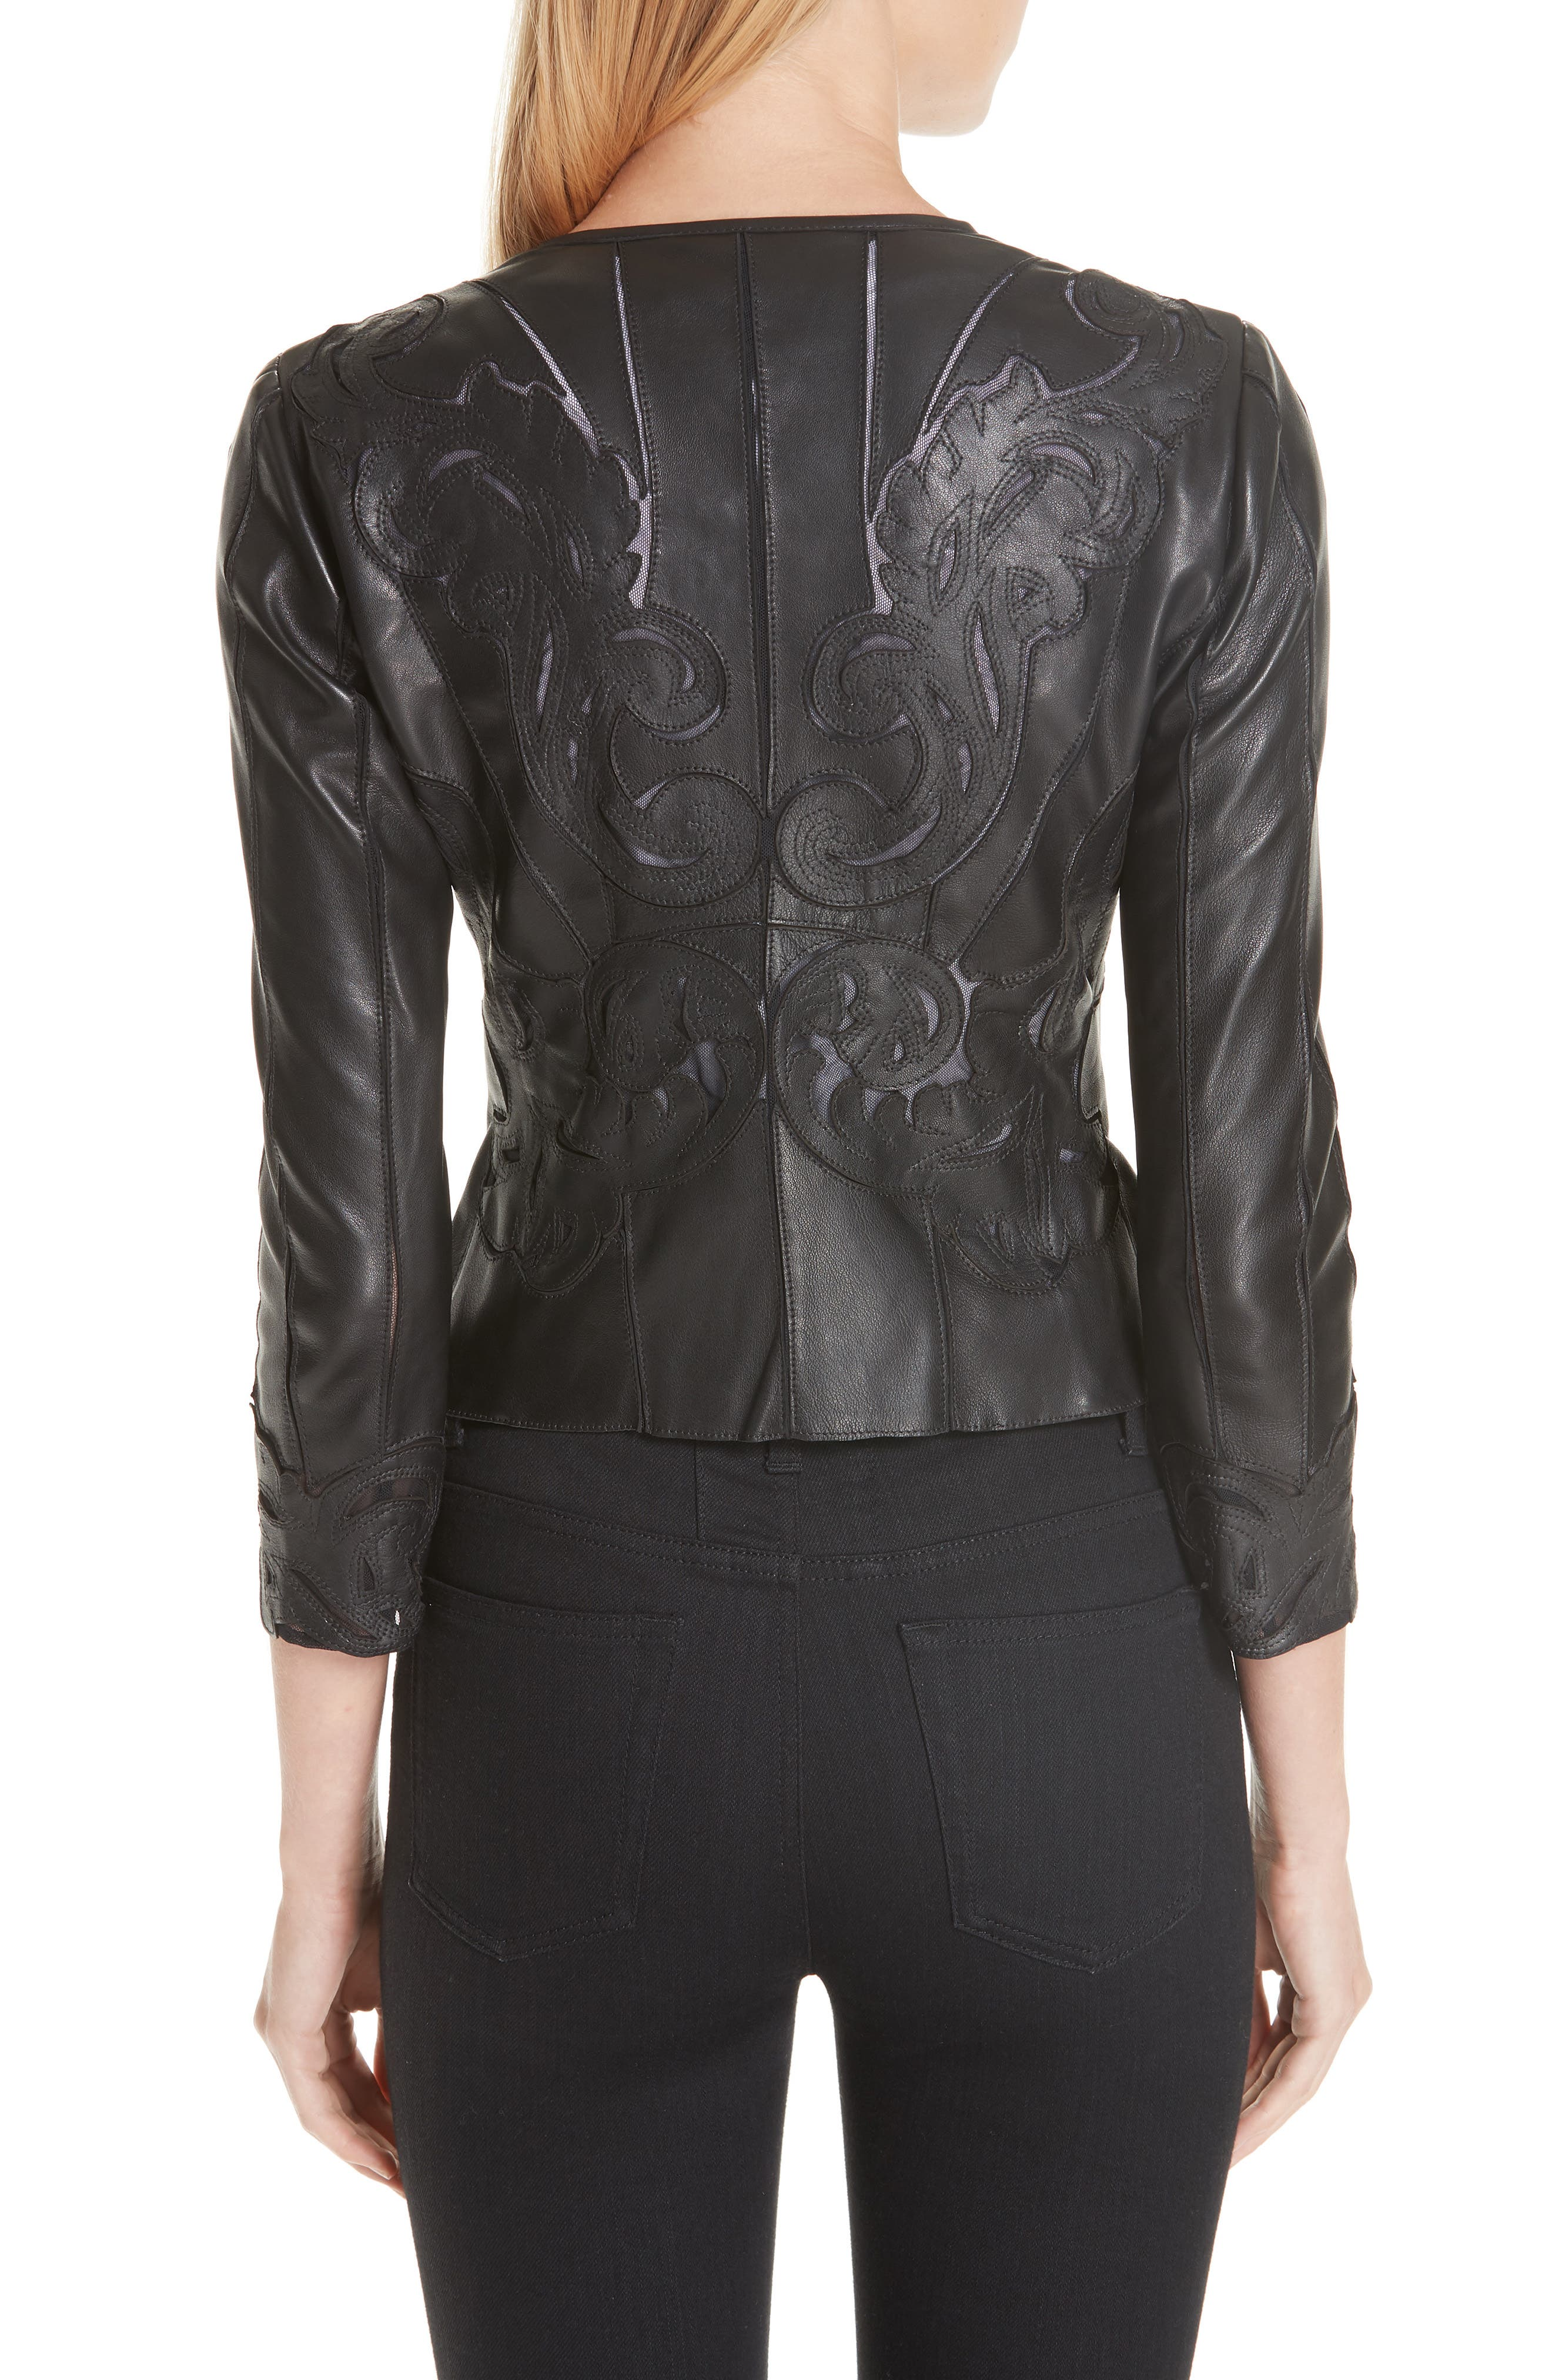 VERSACE COLLECTION, Fitted Leather Jacket, Alternate thumbnail 2, color, BLACK